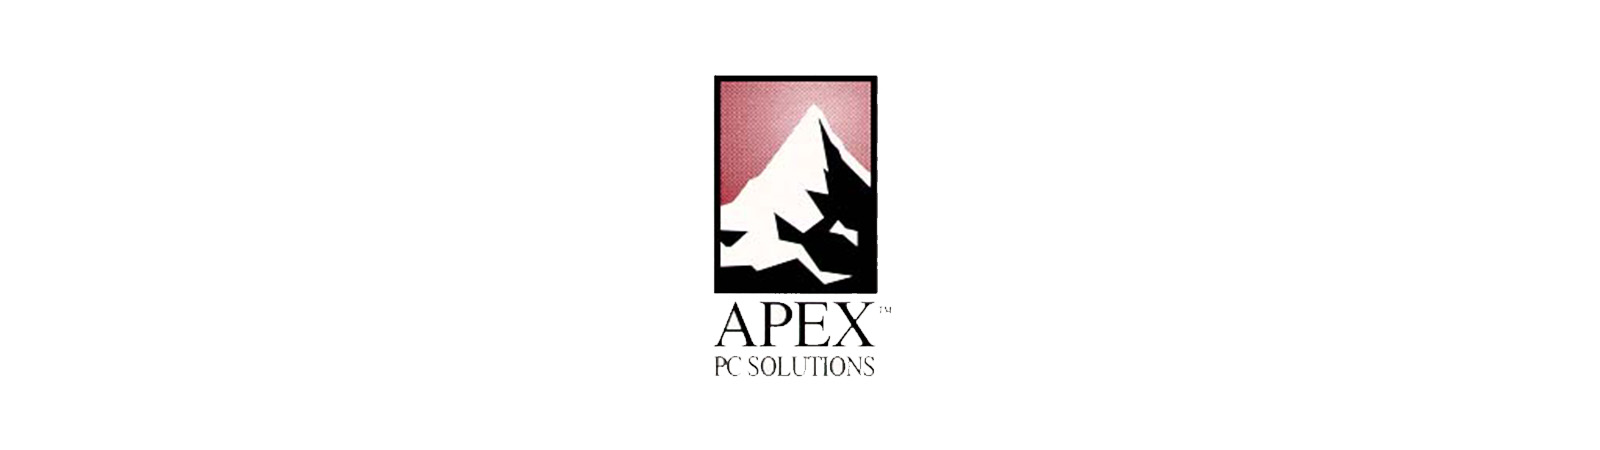 Apex PC Solutions Logo Image